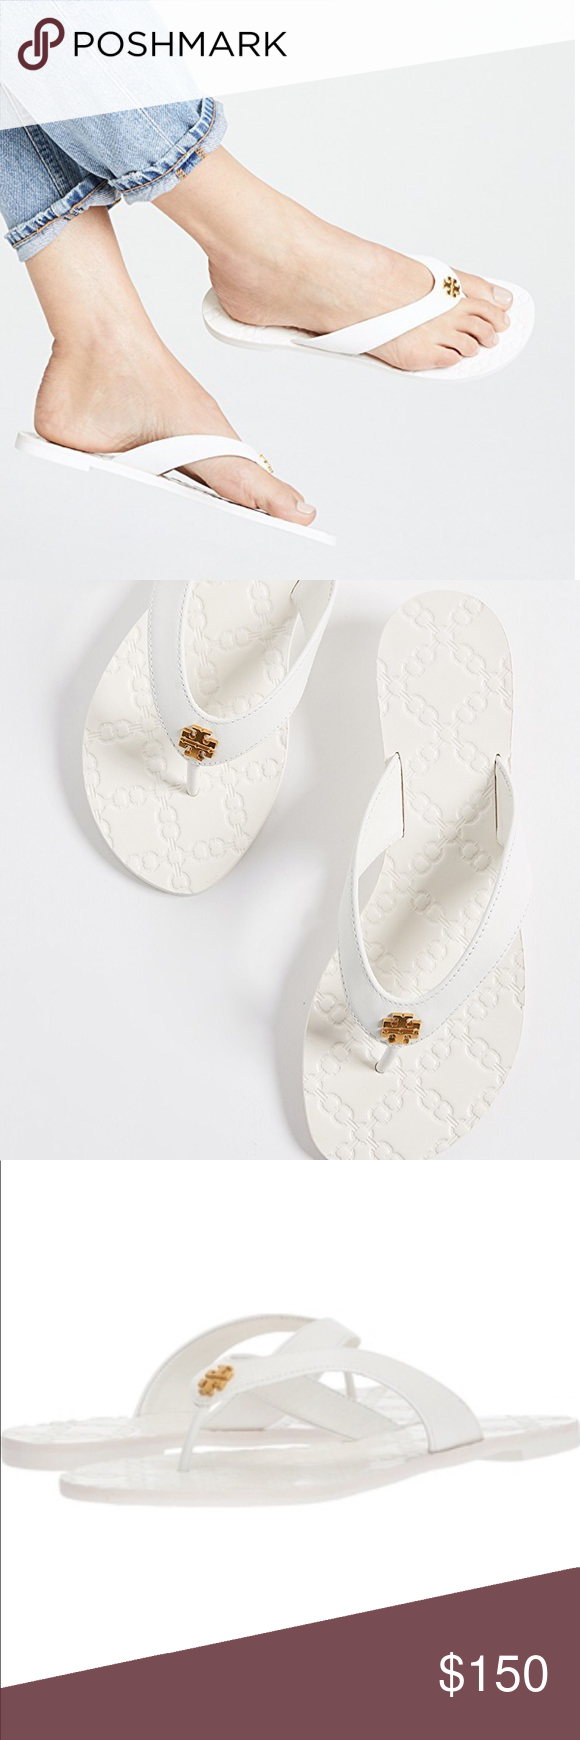 f6a3c613a Flip Flop Sandals · Tory Burch Monroe White Leather Thong Sandal New in  box. Never wore or used.